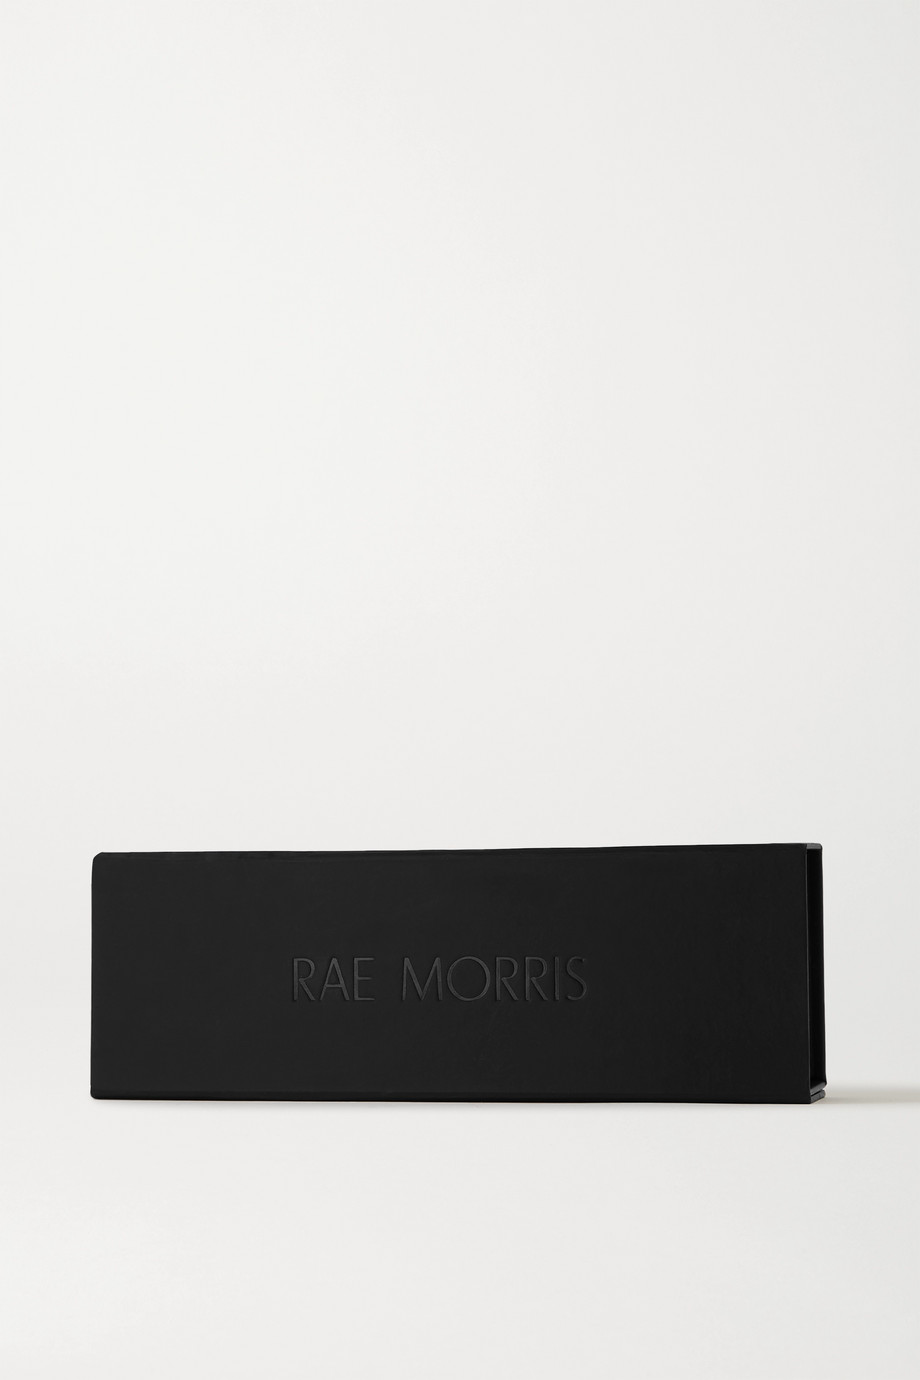 RAE MORRIS Personal 8 Brush Set and Plate